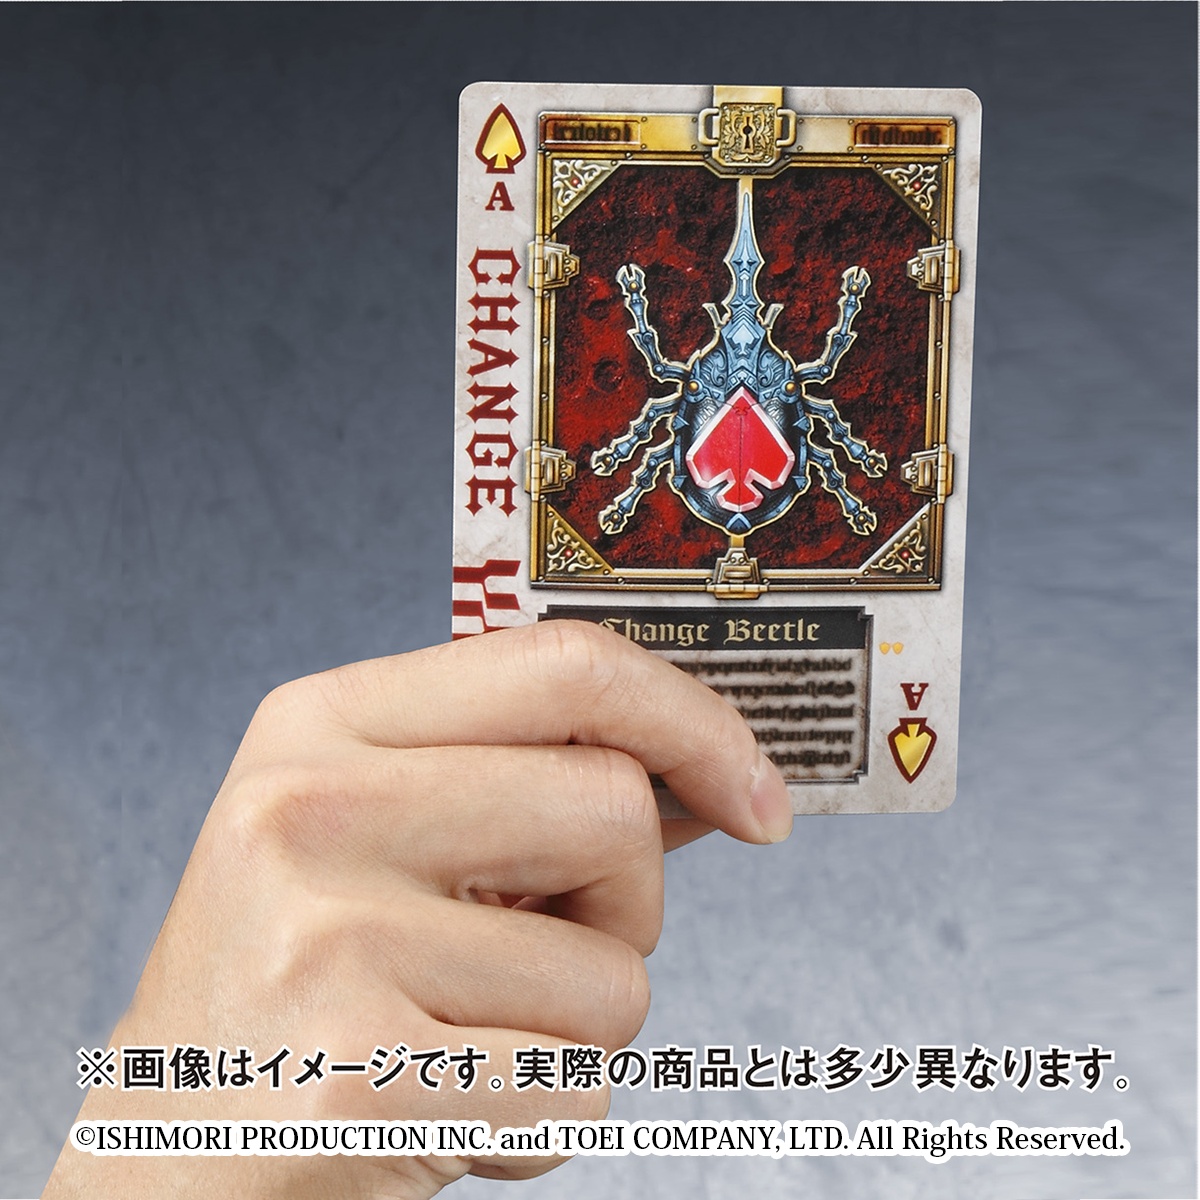 rousecard_15TH_web_p6.png